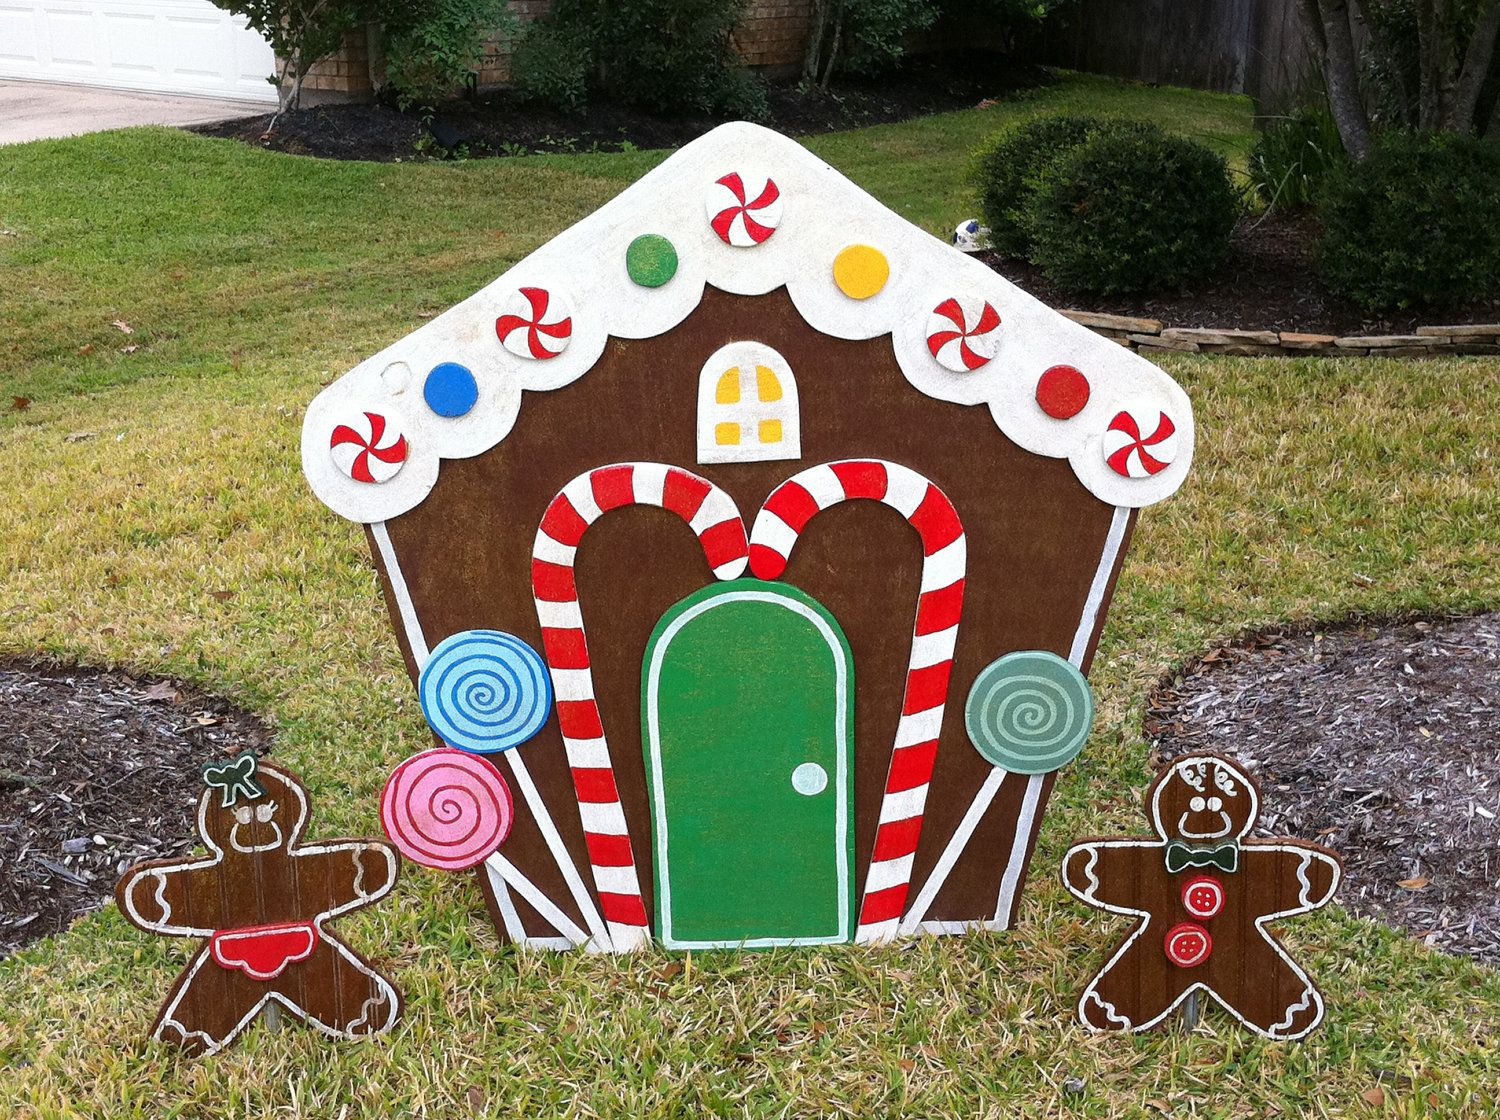 gingerbread house yard art christmas decoration christmas yard decorations gingerbread decorations holiday decor - Christmas Gingerbread House Yard Decoration